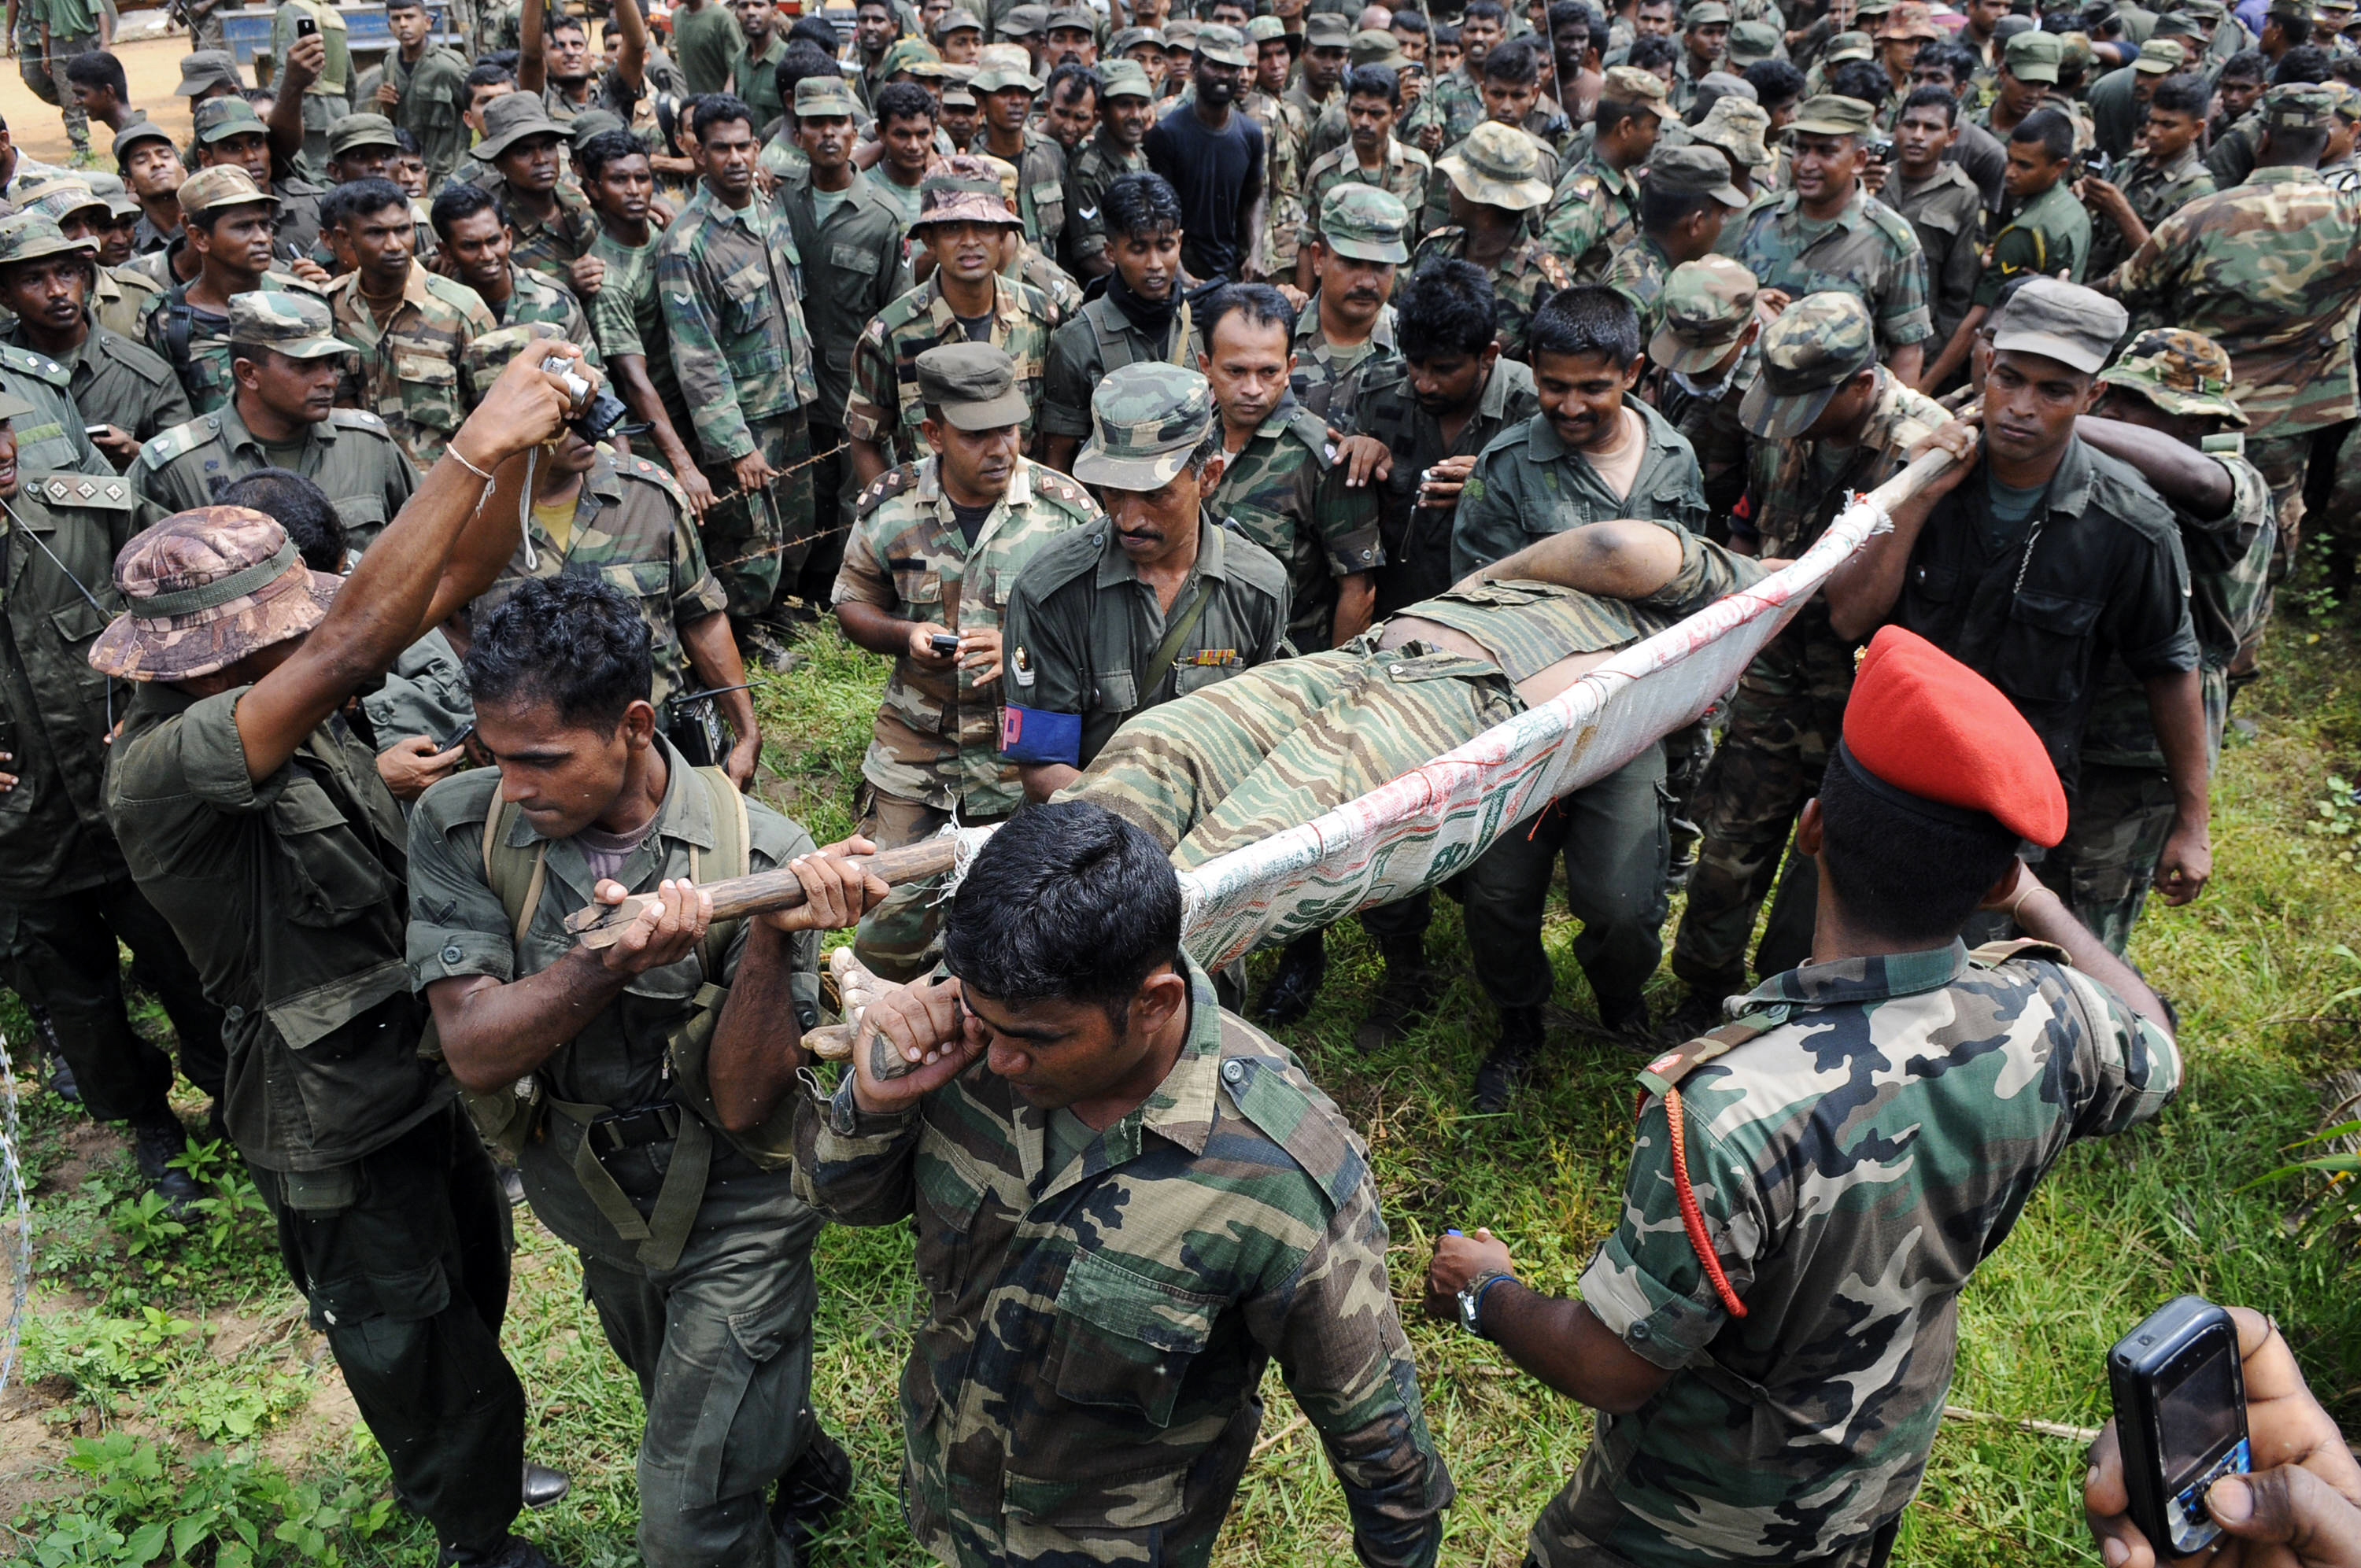 CORRECTING SOURCE Sri Lankan soldiers carry the remains of what is said to be Tamil Tiger rebel leader Velupillai Prabhakaran in the district of Mullaittivu on May 19, 2009. Sri Lanka marked victory over Tamil Tiger rebels with a national holiday, though security forces were on a state of high alert against revenge attacks after the entire rebel leadership was wiped out in a final stand. AFP PHOTO/Associated Newspapers of Ceylon Limited (Lake House) (Photo credit should read STR/AFP/Getty Images)